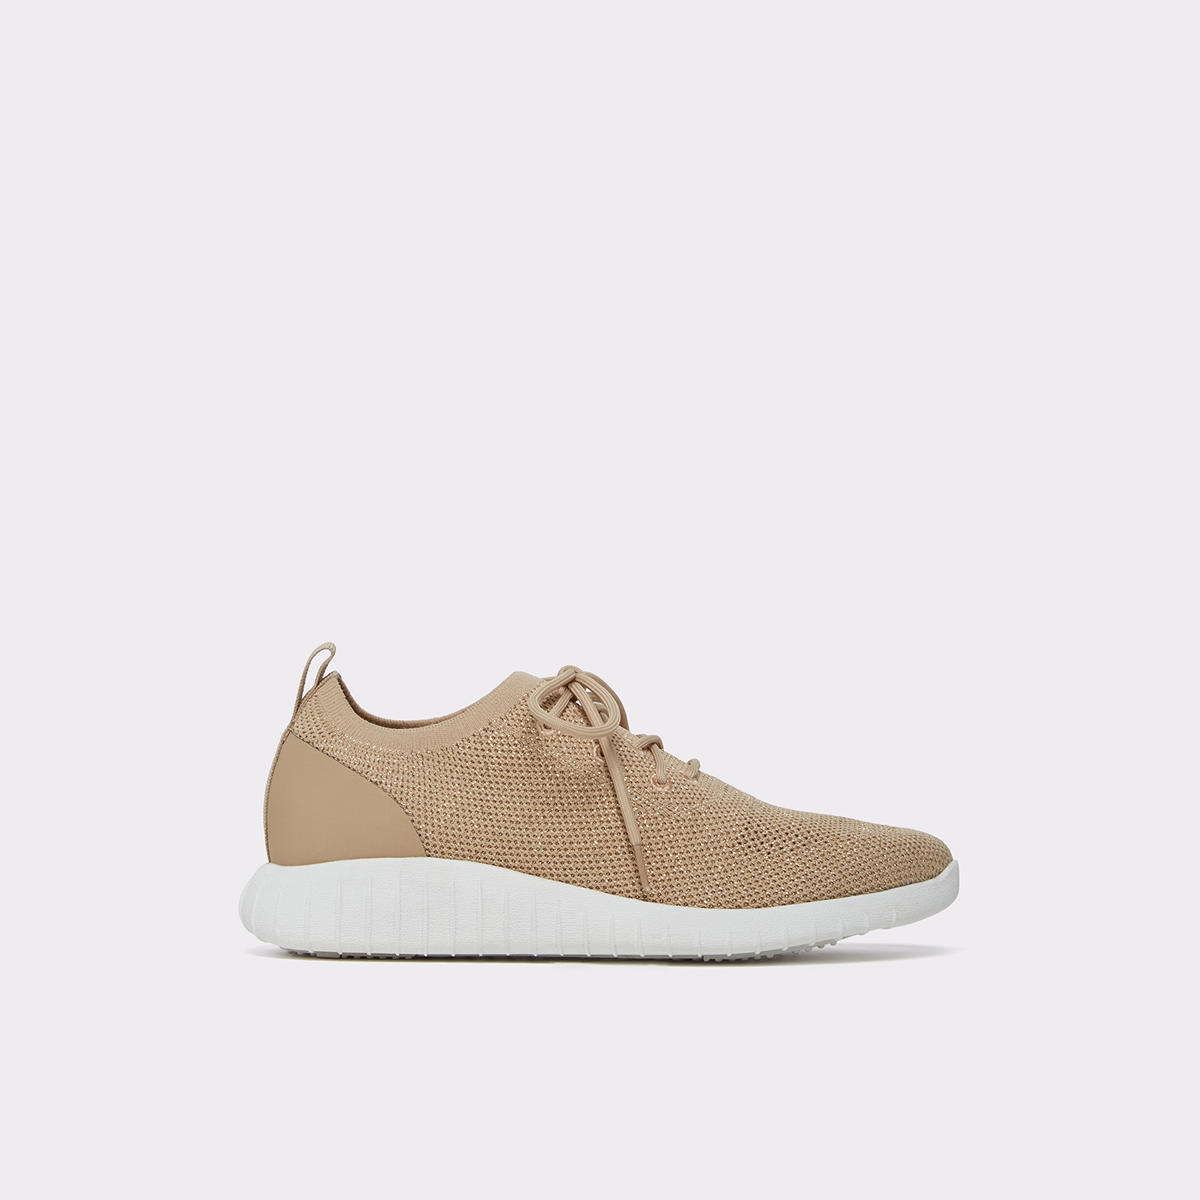 Swayze Gold Women's Online exclusives | ALDO US at Aldo Shoes in Victor, NY | Tuggl